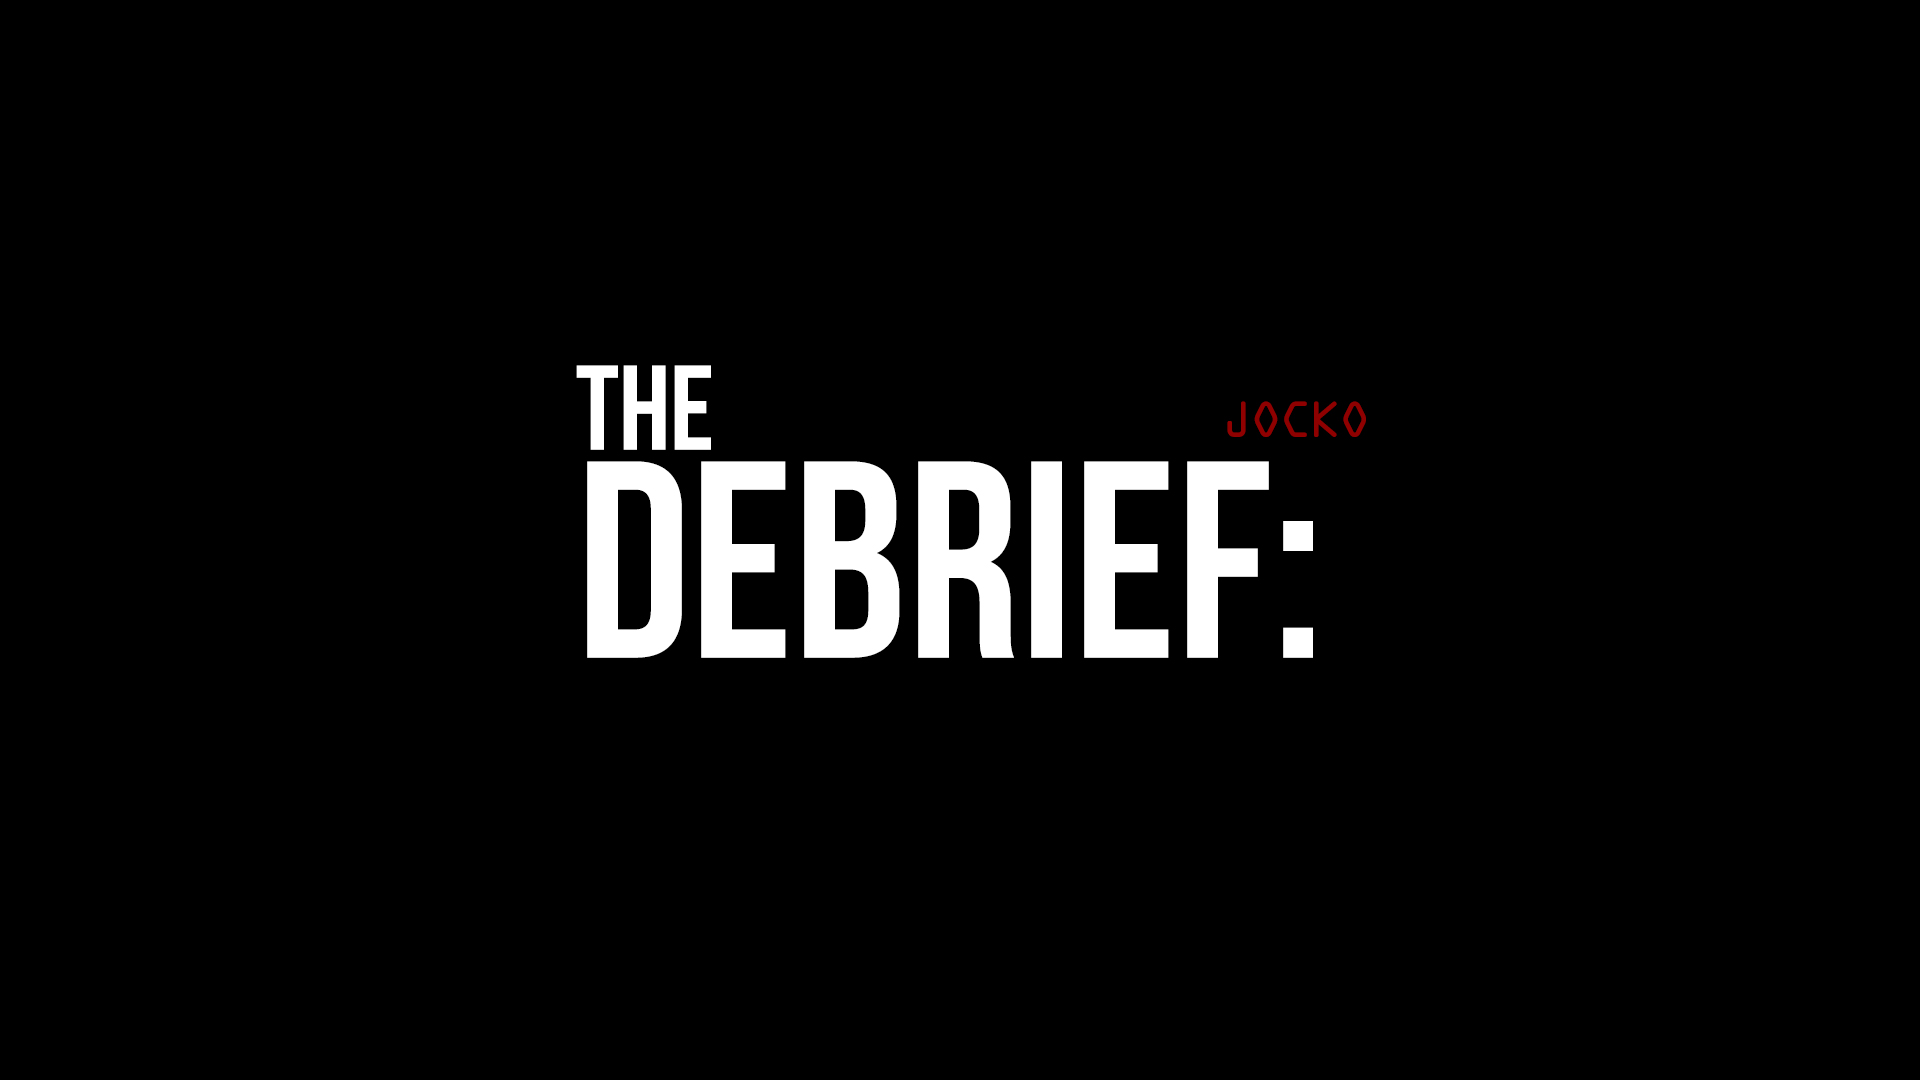 The Debrief w/ Jocko and Dave Berke #3: High Valued Employee Creating Friction